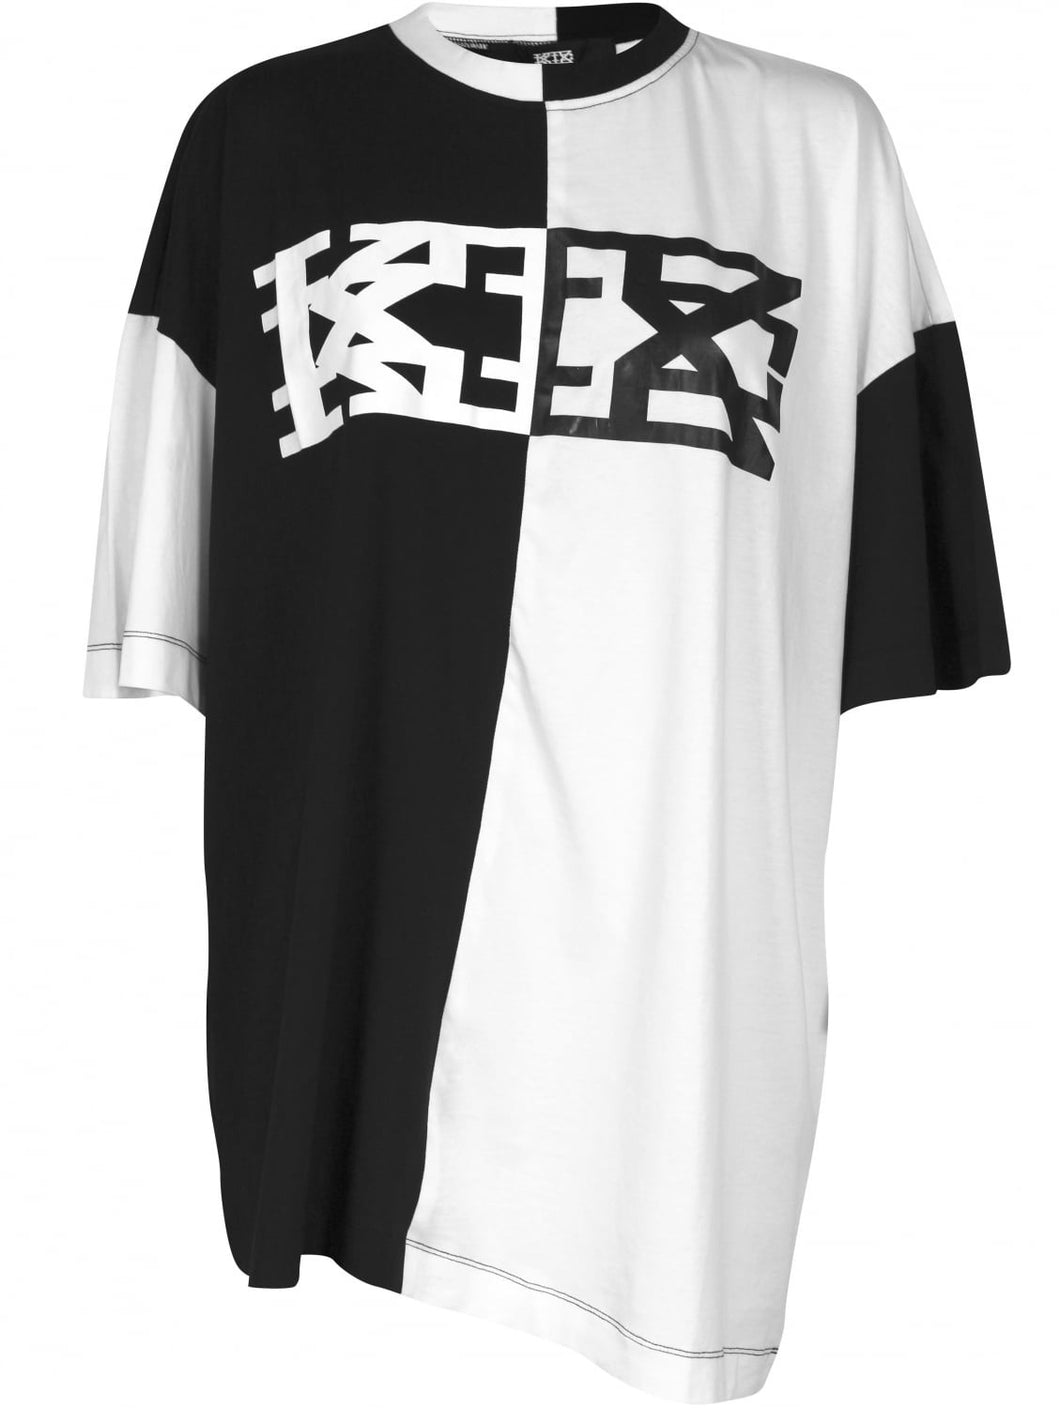 KTZ LOGO T-SHIRT BLACK/WHITE